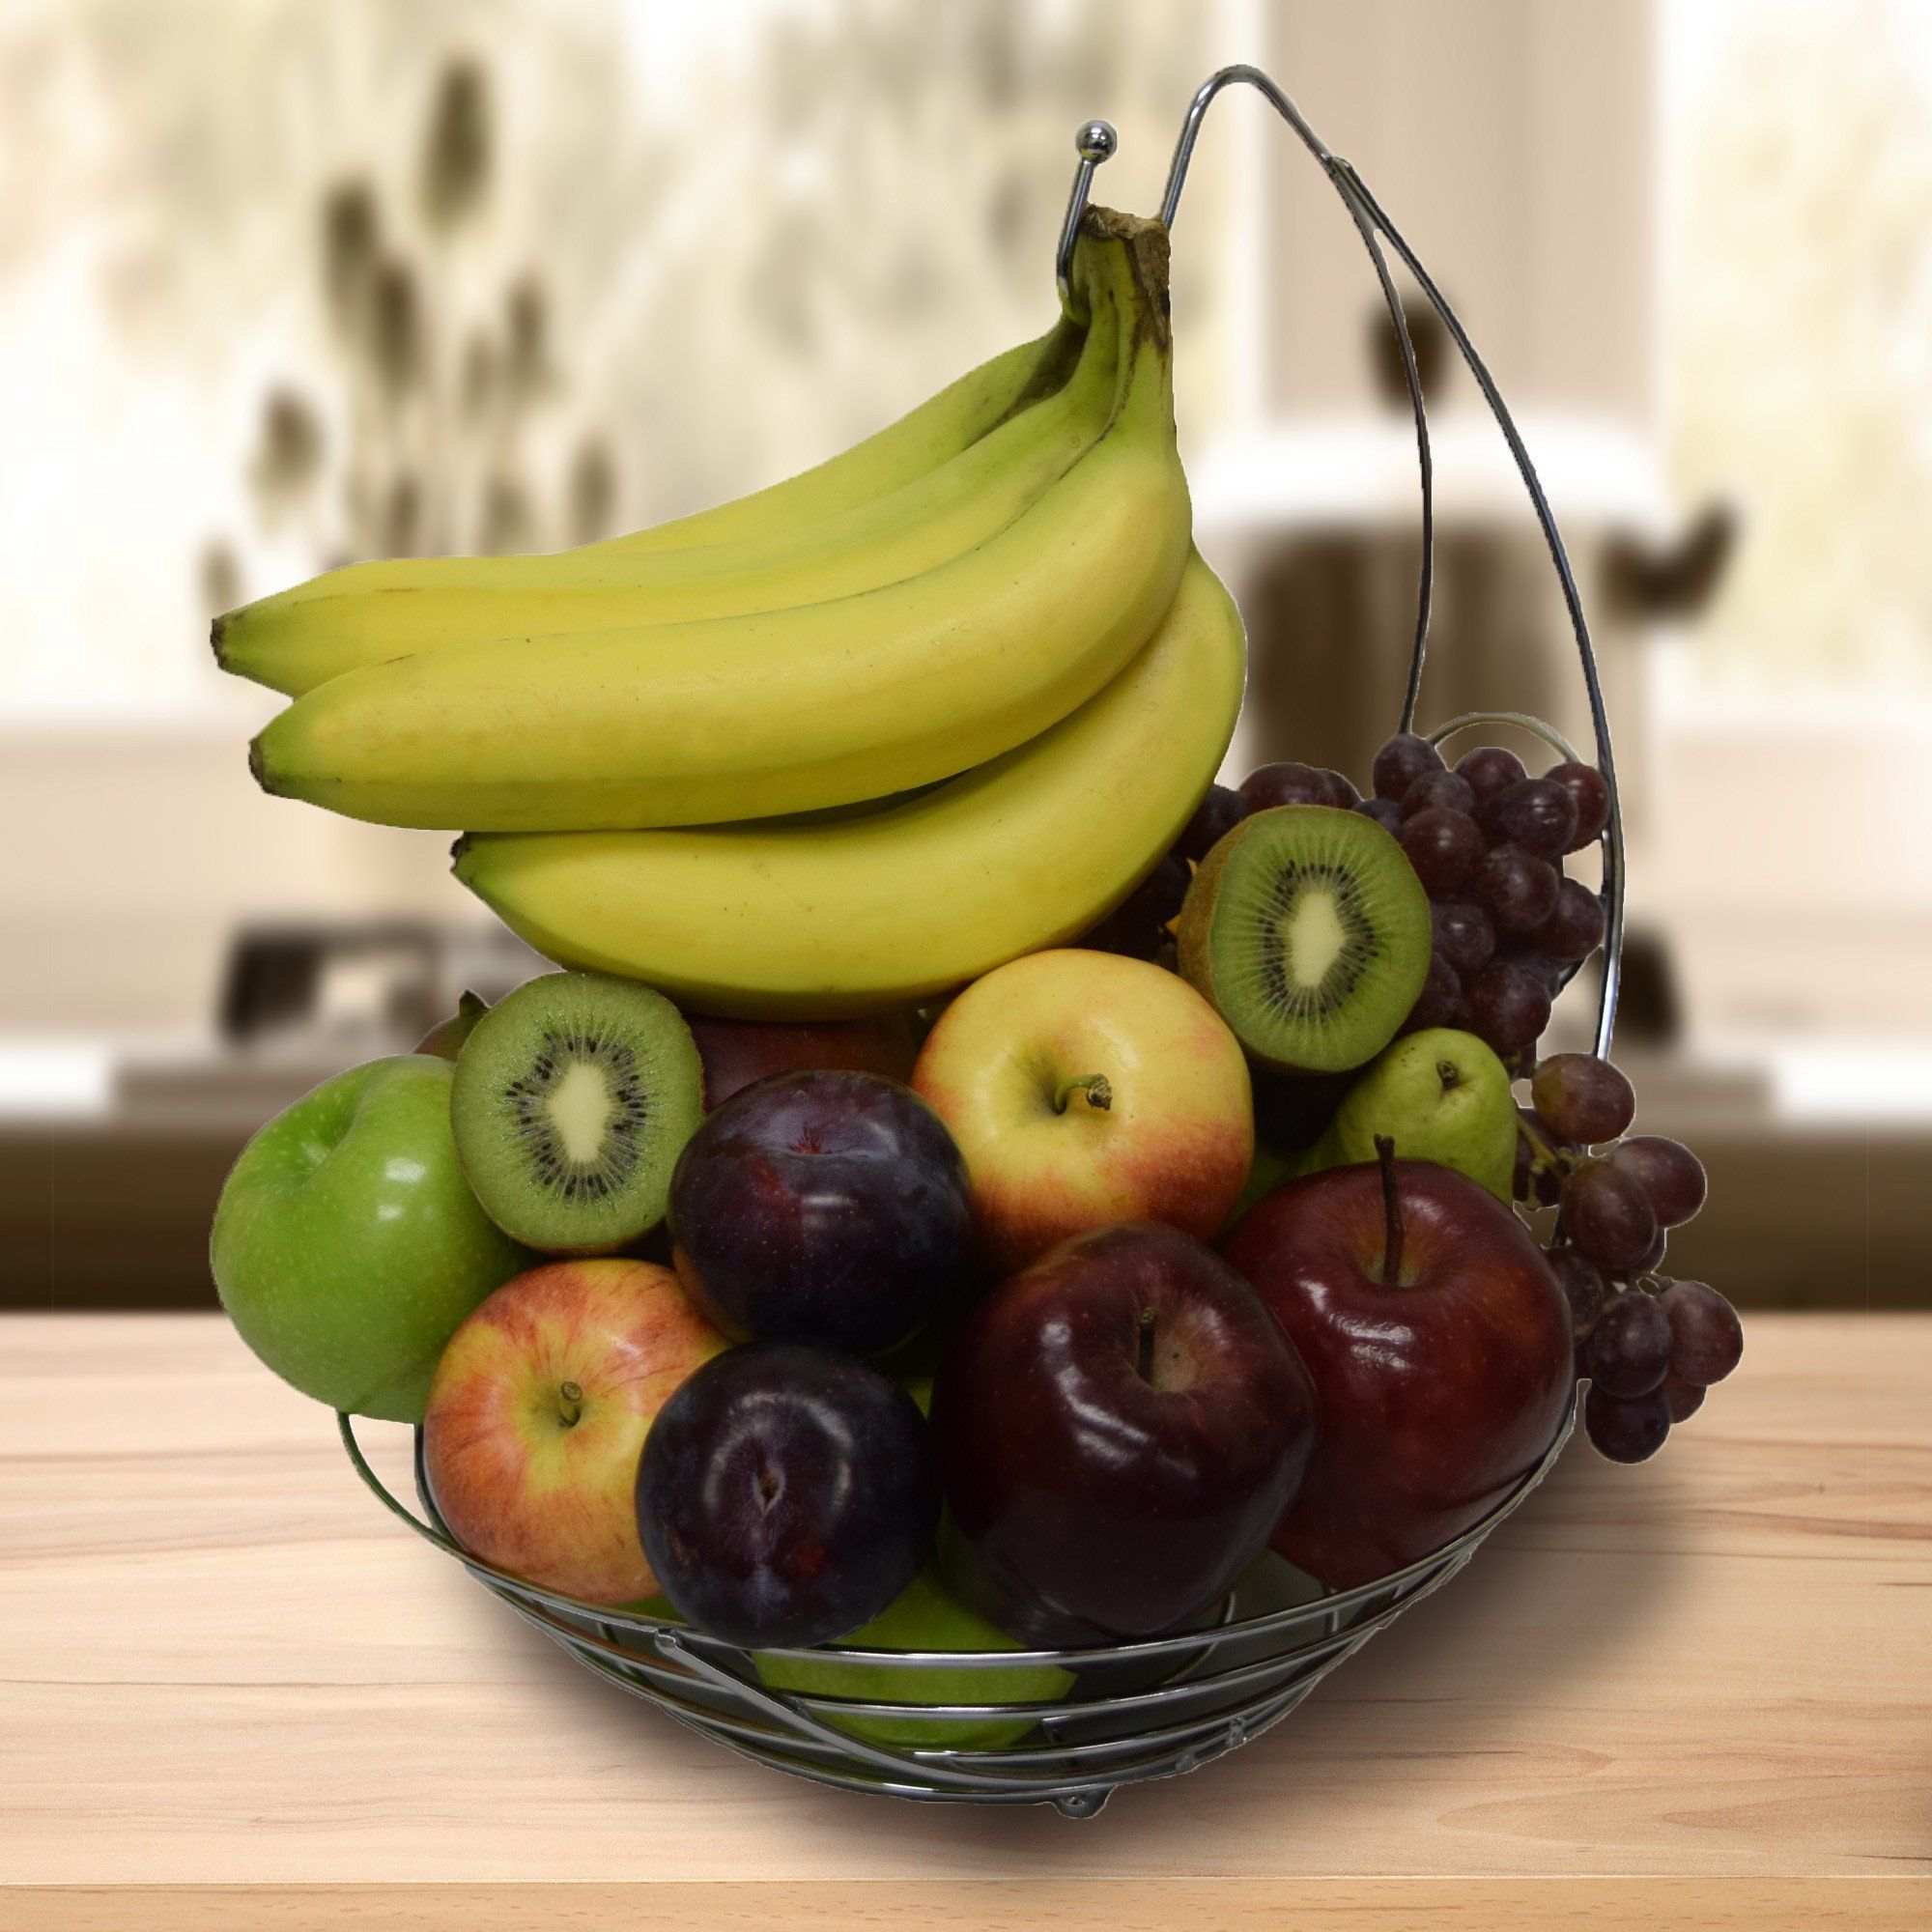 The Metro Fruit Basket